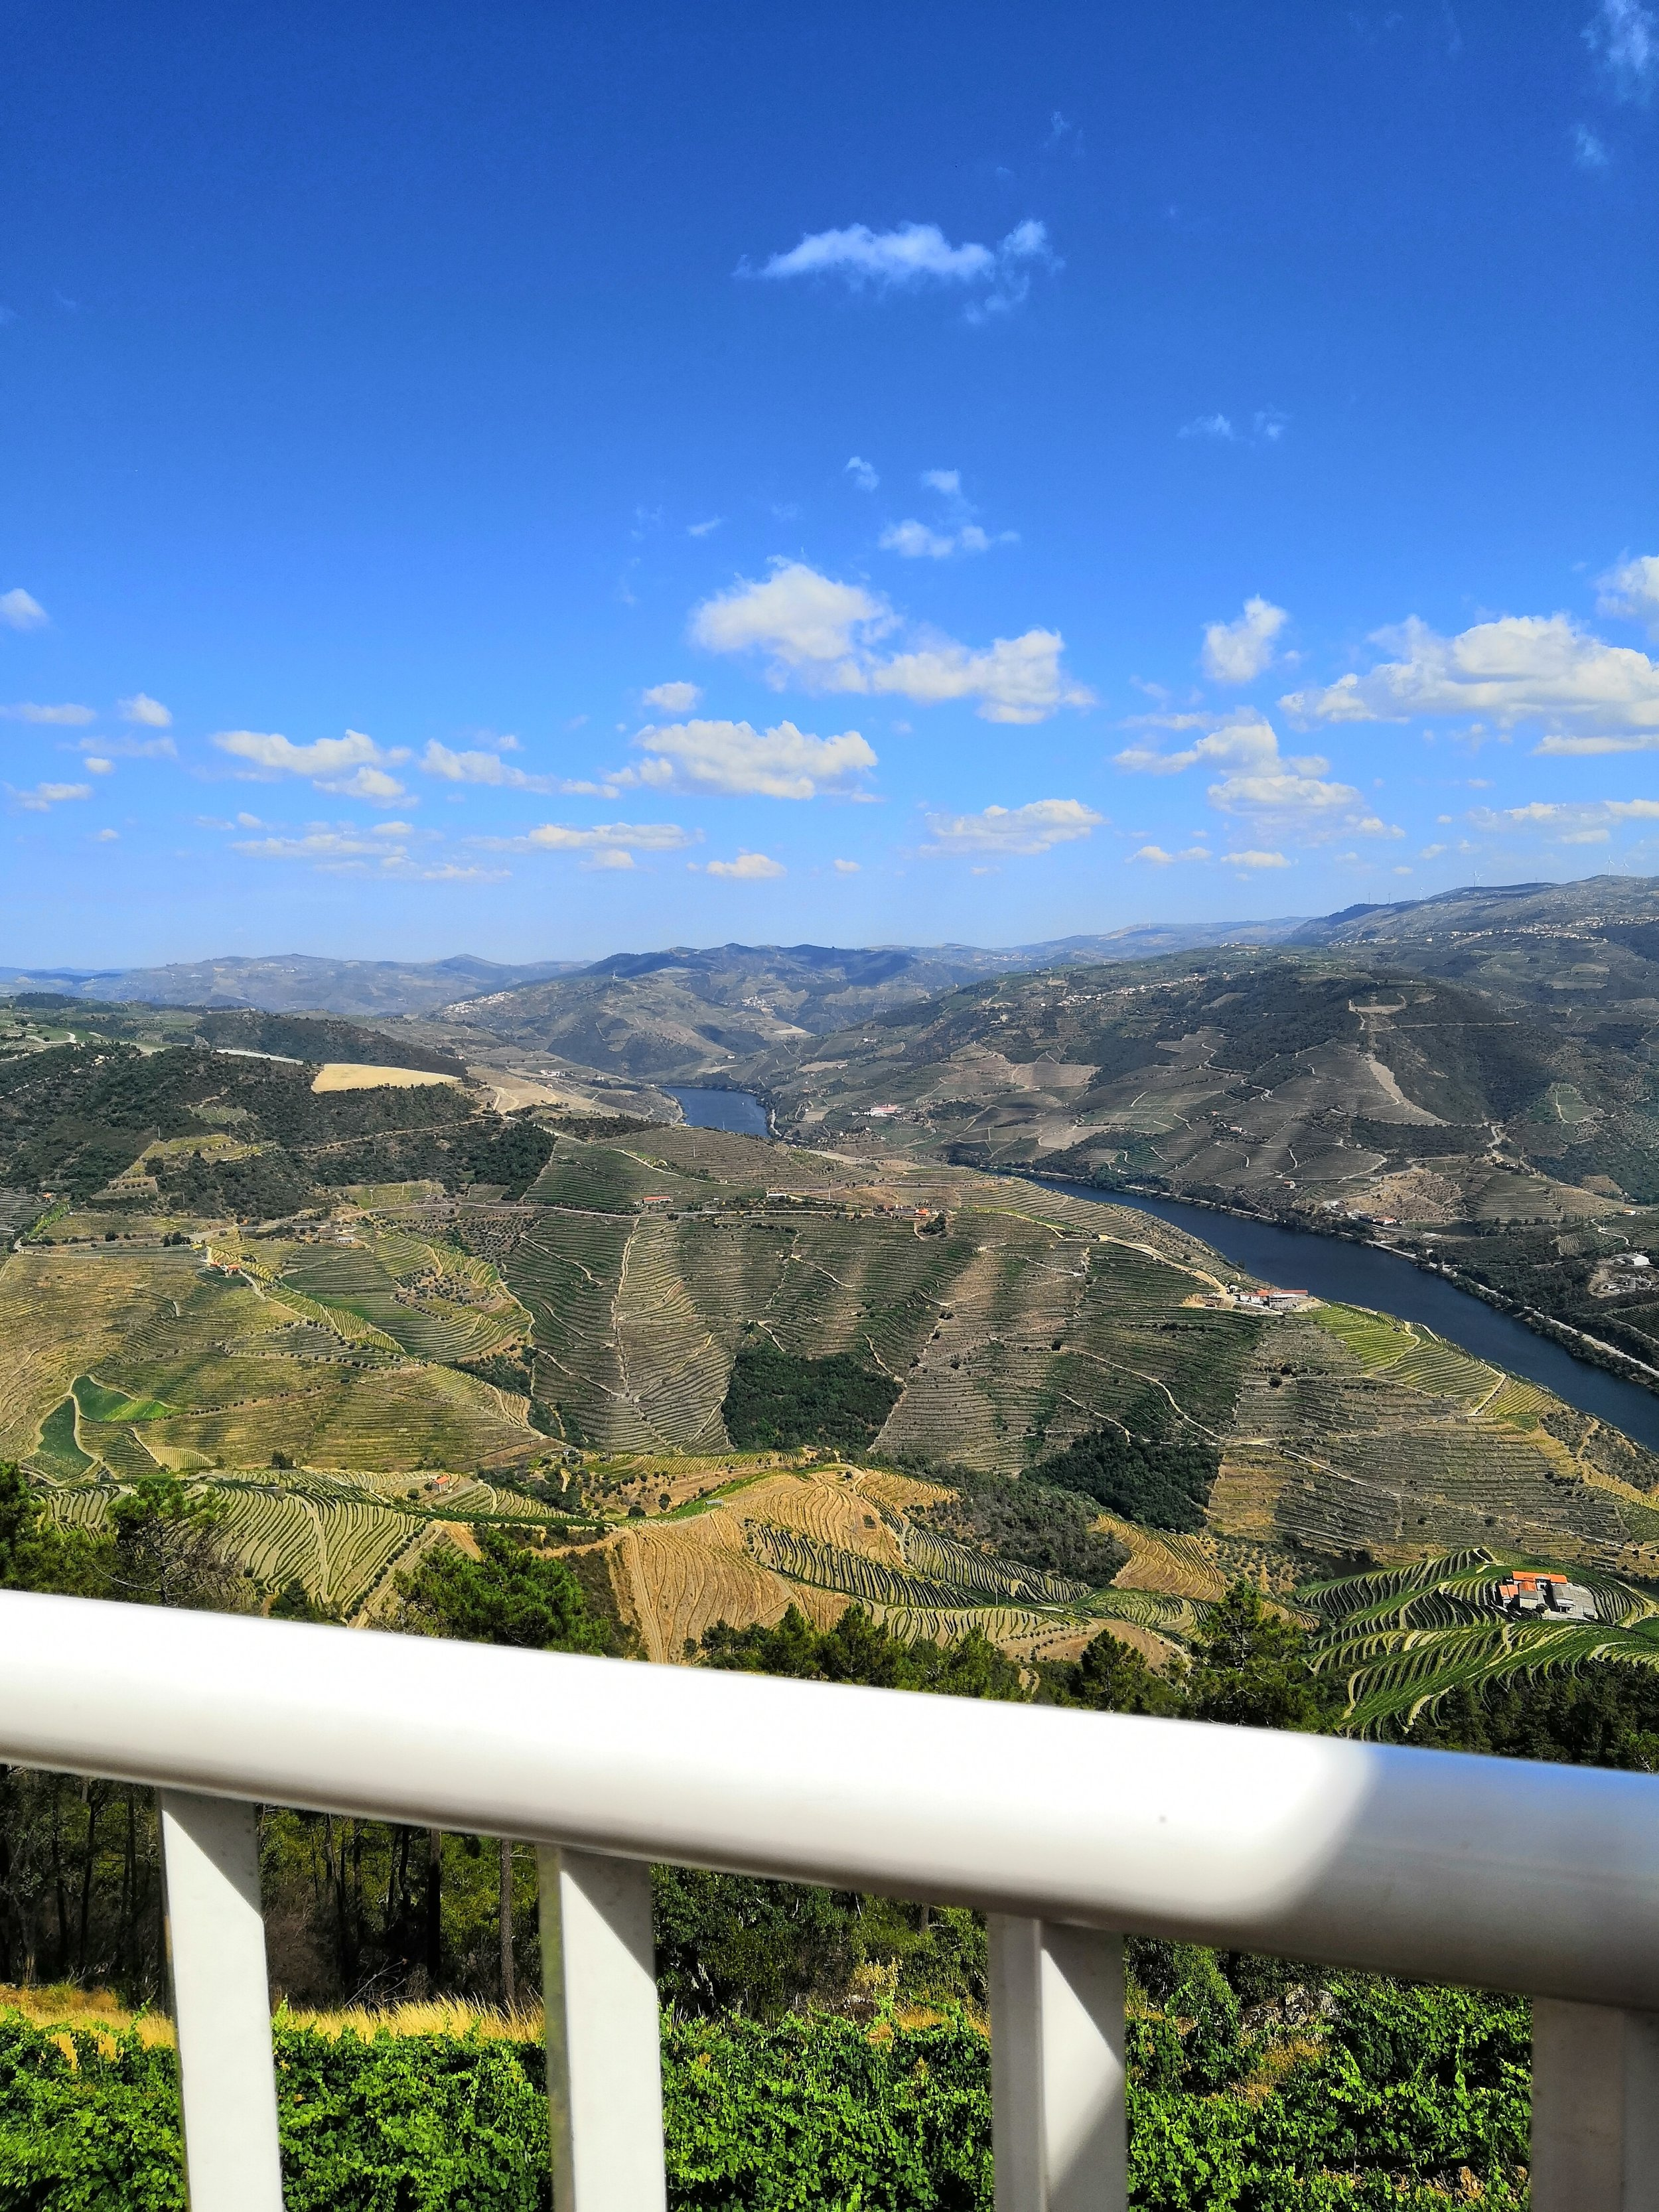 Wednesday May 6, 2020 - Breakfast.Day trip to the Douro Valley (wine region).Dinner.Overnight @ hotel.